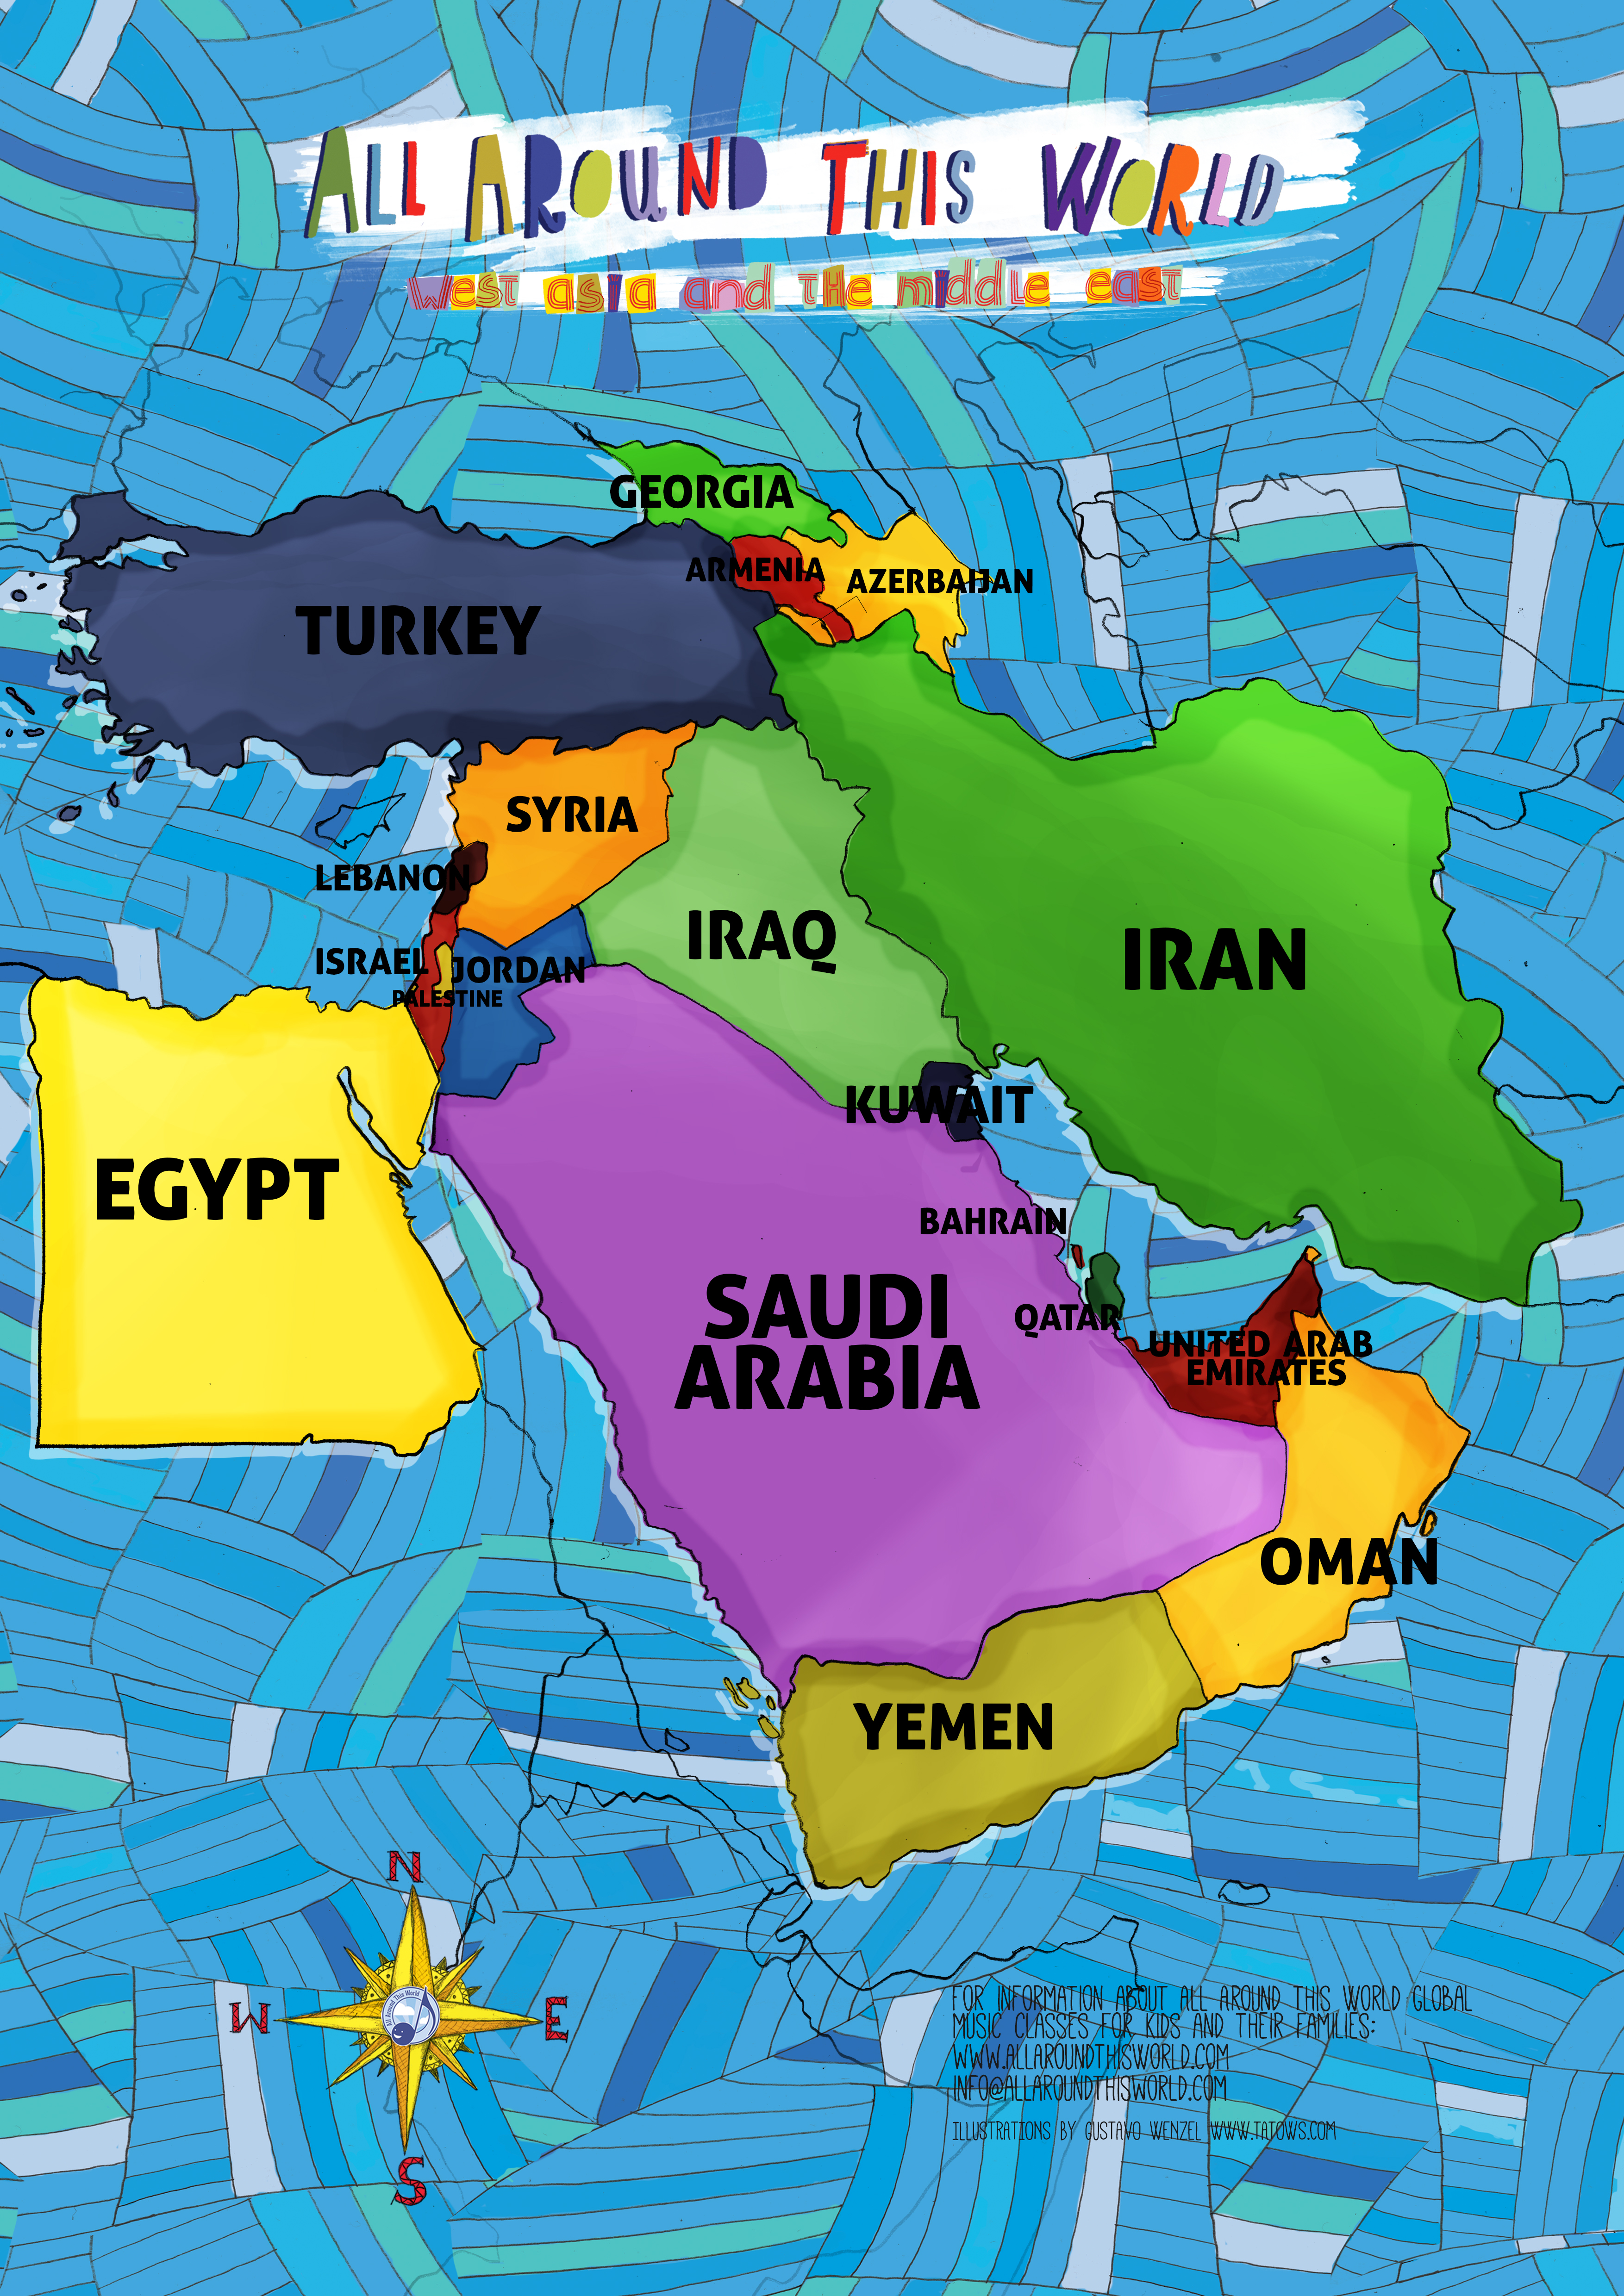 All Around This World West Asia and the Middle East